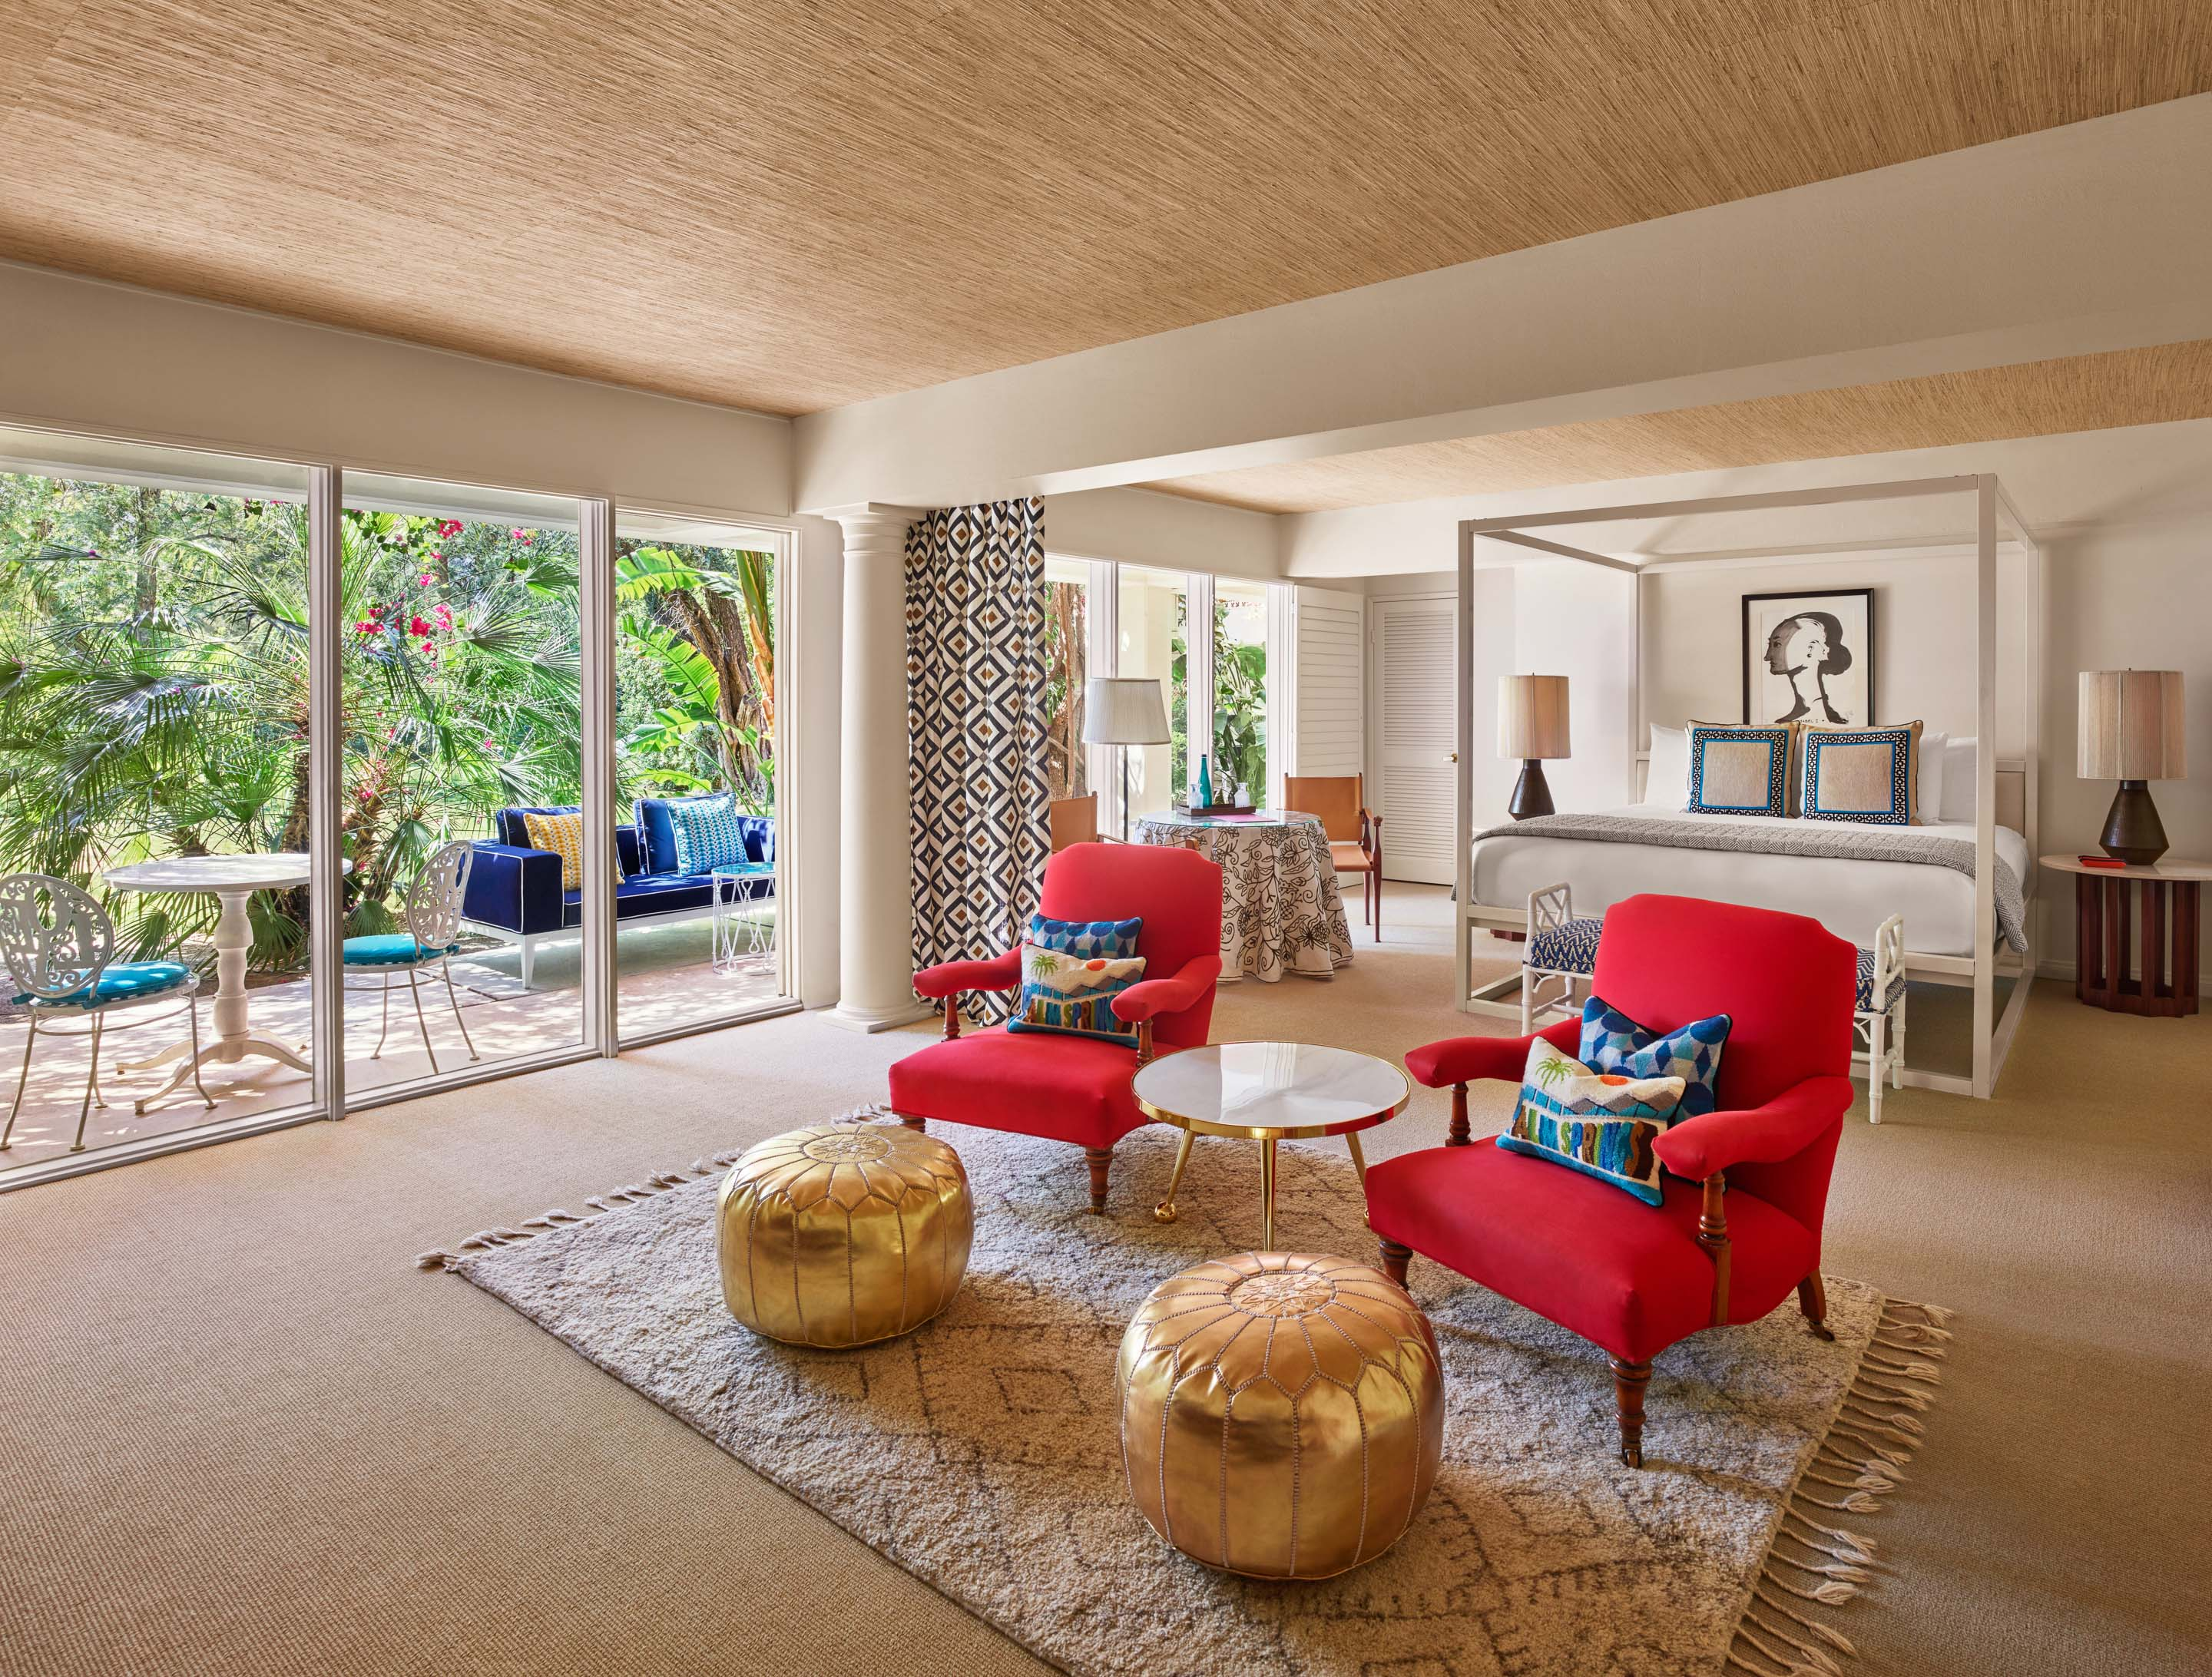 Jonathan Adler A Sumptuous Look On Interior Design Insplosion